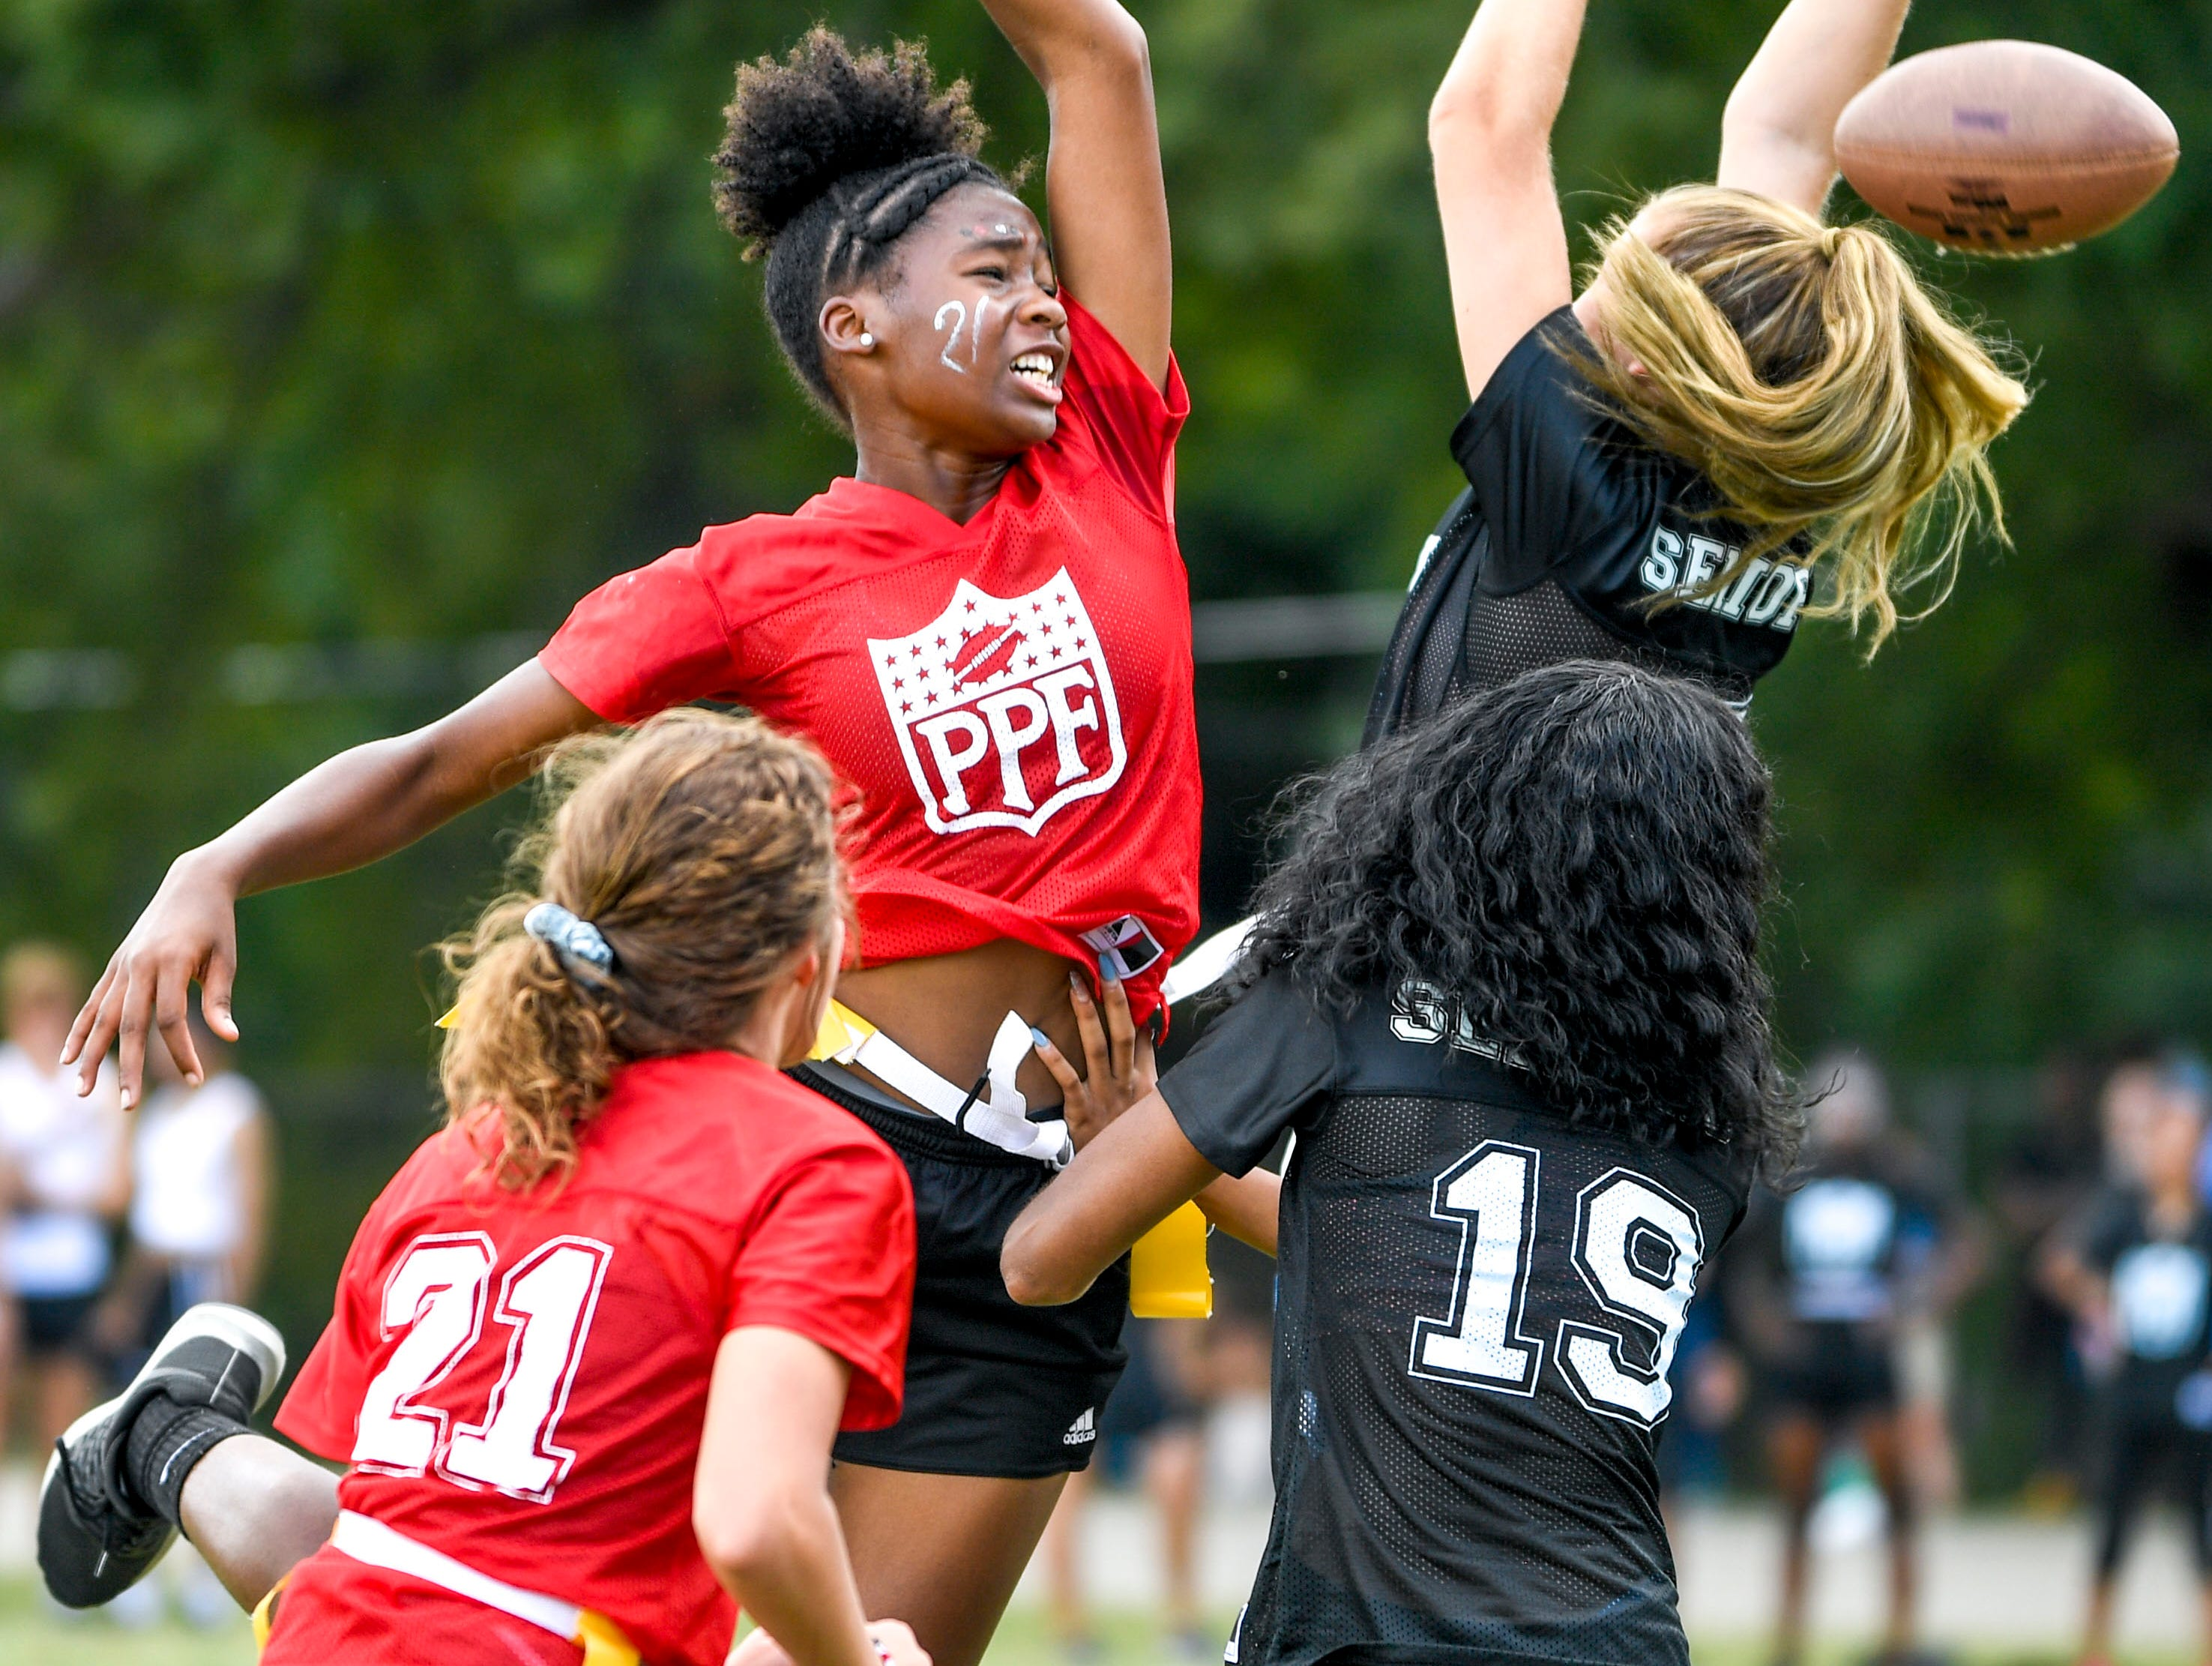 Sophomore and senior players leap to catch a pass thrown for a sophomore during the 2017 Powder Puff game at Madison Academic High School in Jackson, Tenn., on Friday, Sept. 21, 2018.